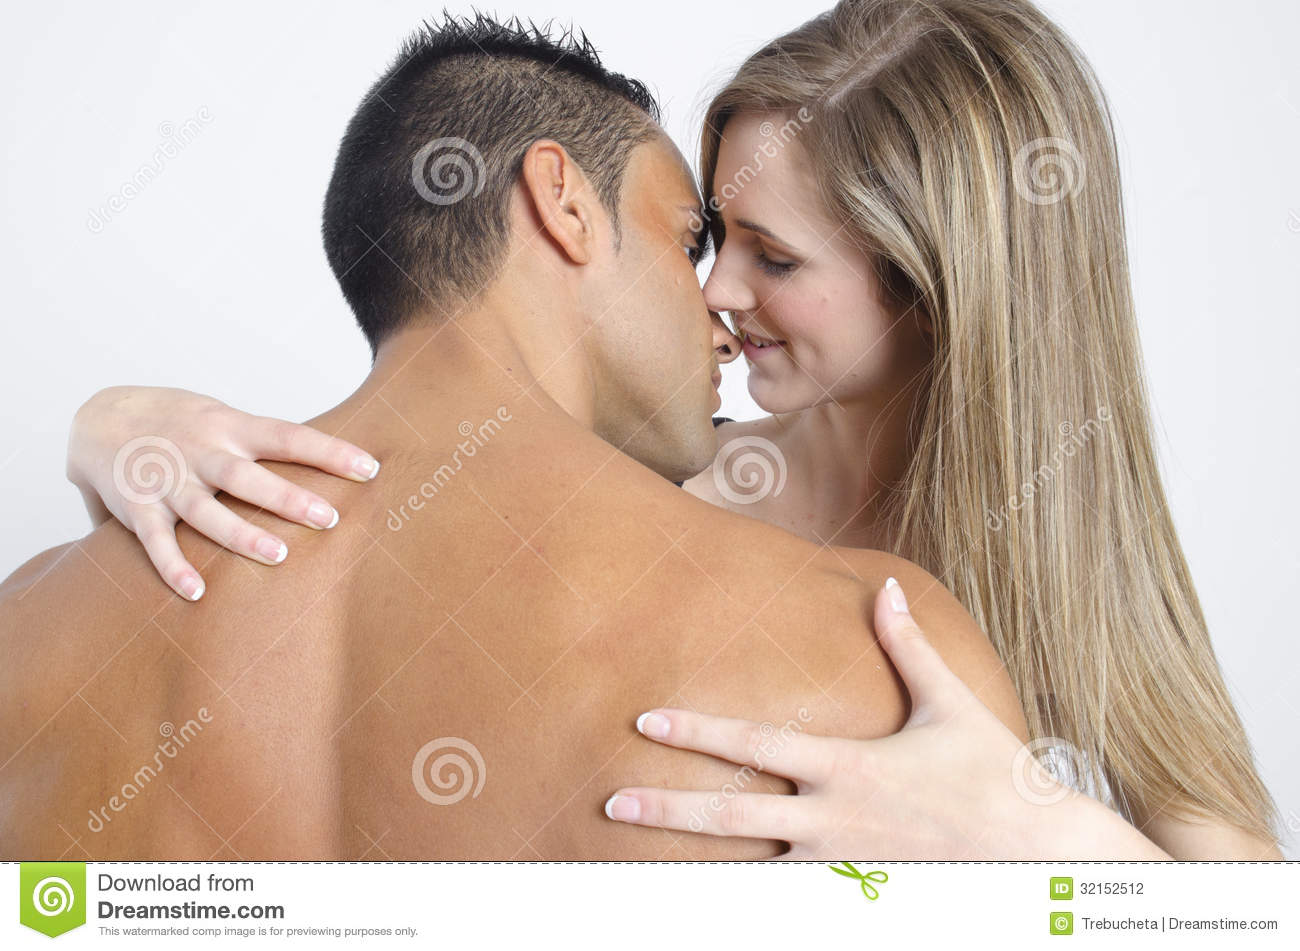 Entertaining answer Yung girls hote sex love kissing sexy photo consider